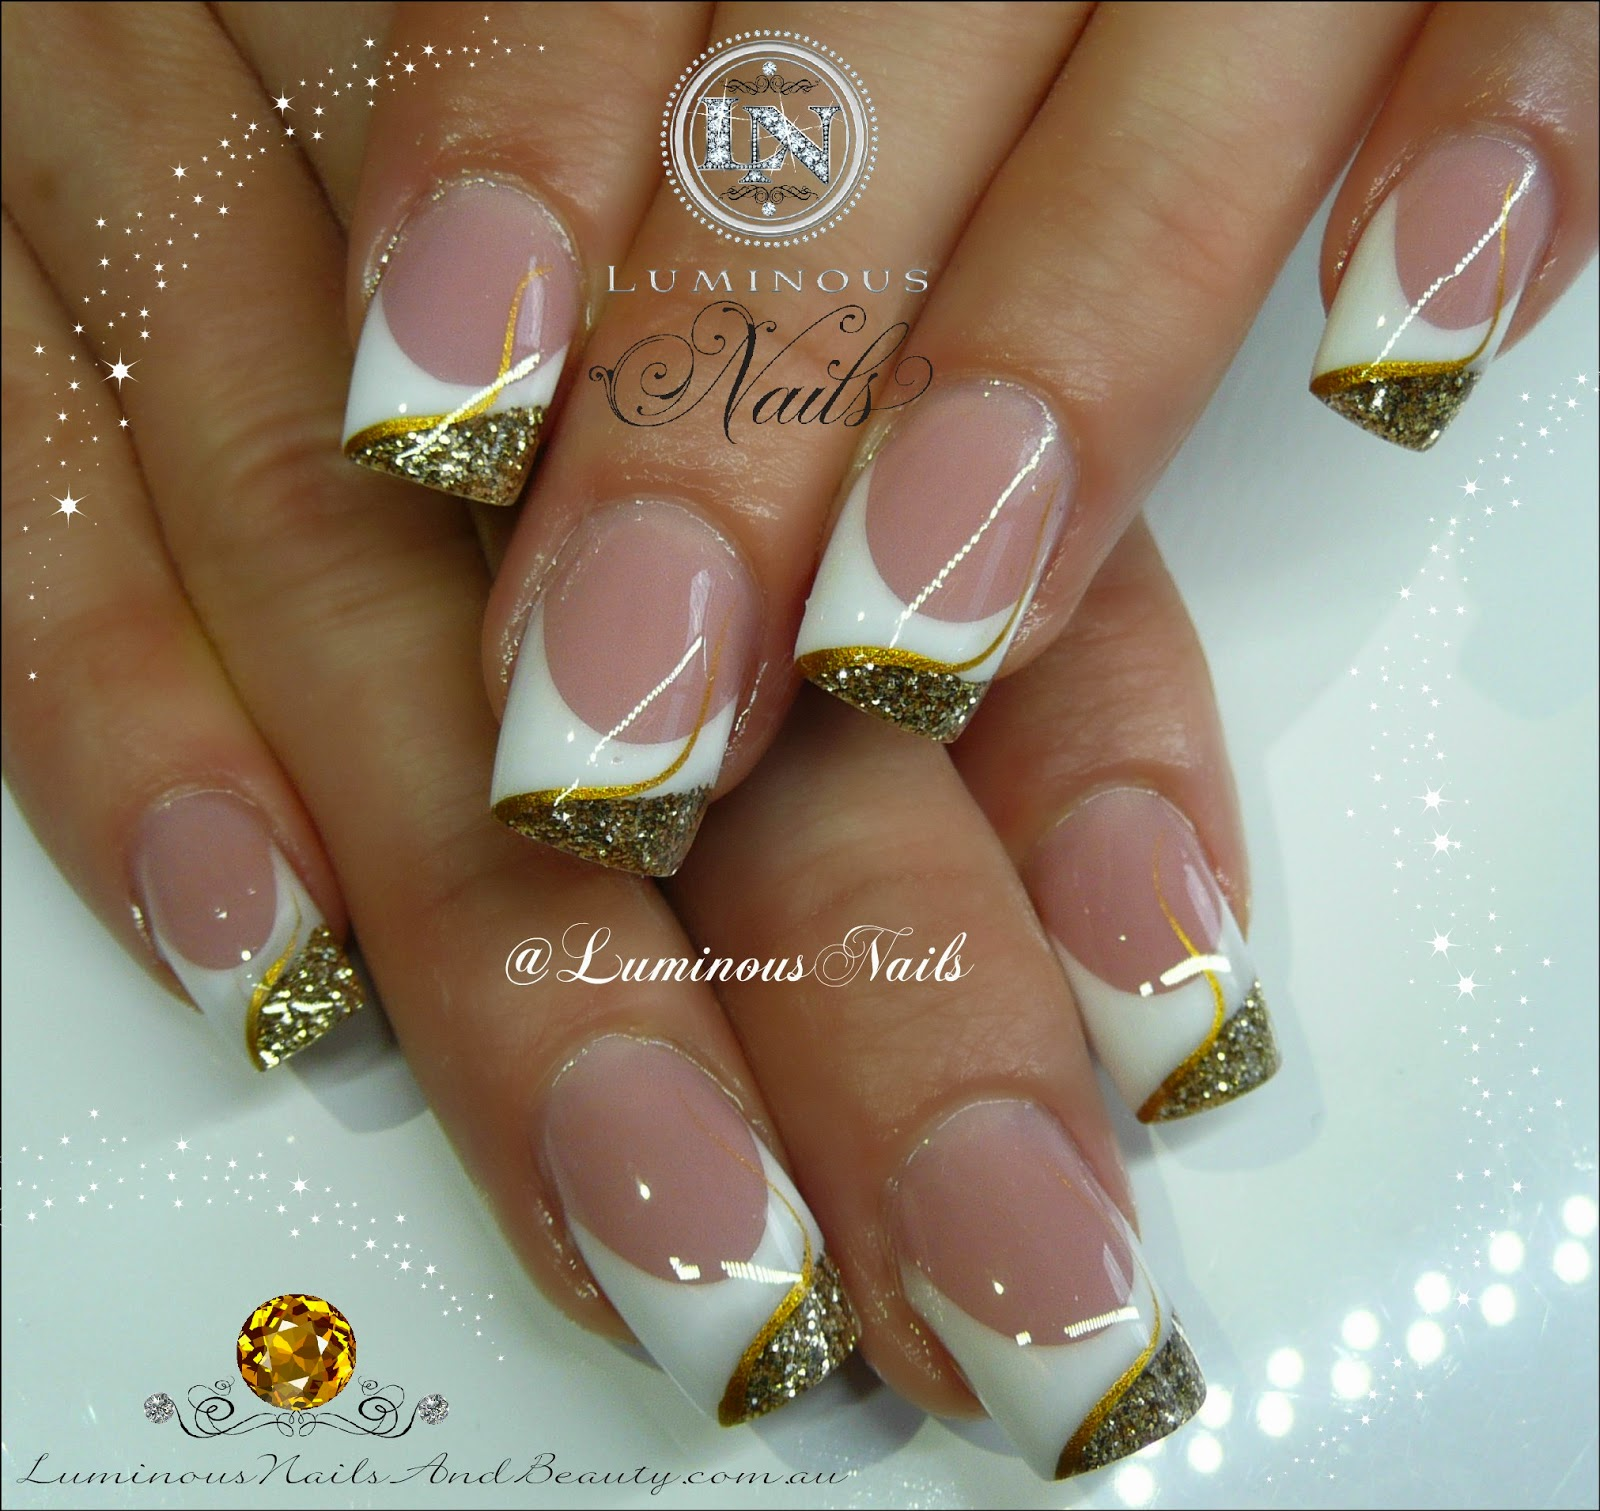 White and gold nail designs white and gold nail designs 36 trendy nails with golden designs fashion diva design prinsesfo Images